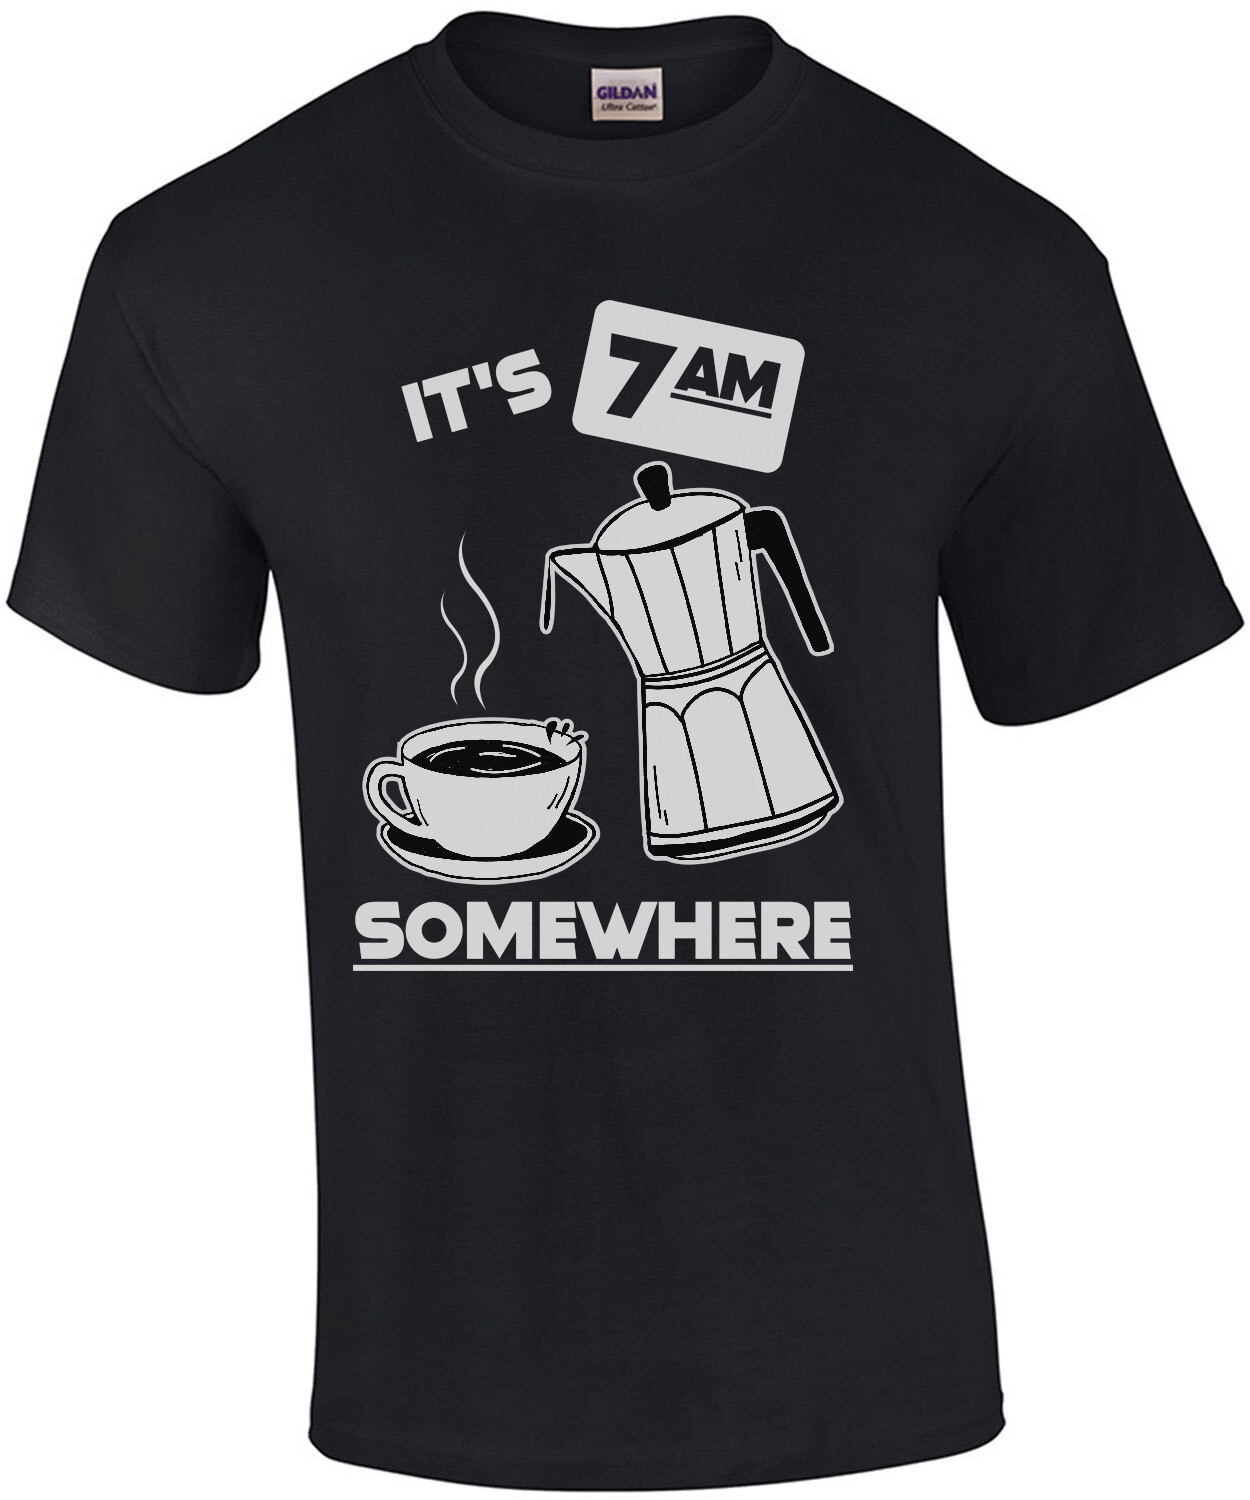 It's 7am somewhere - funny coffee t-shirt